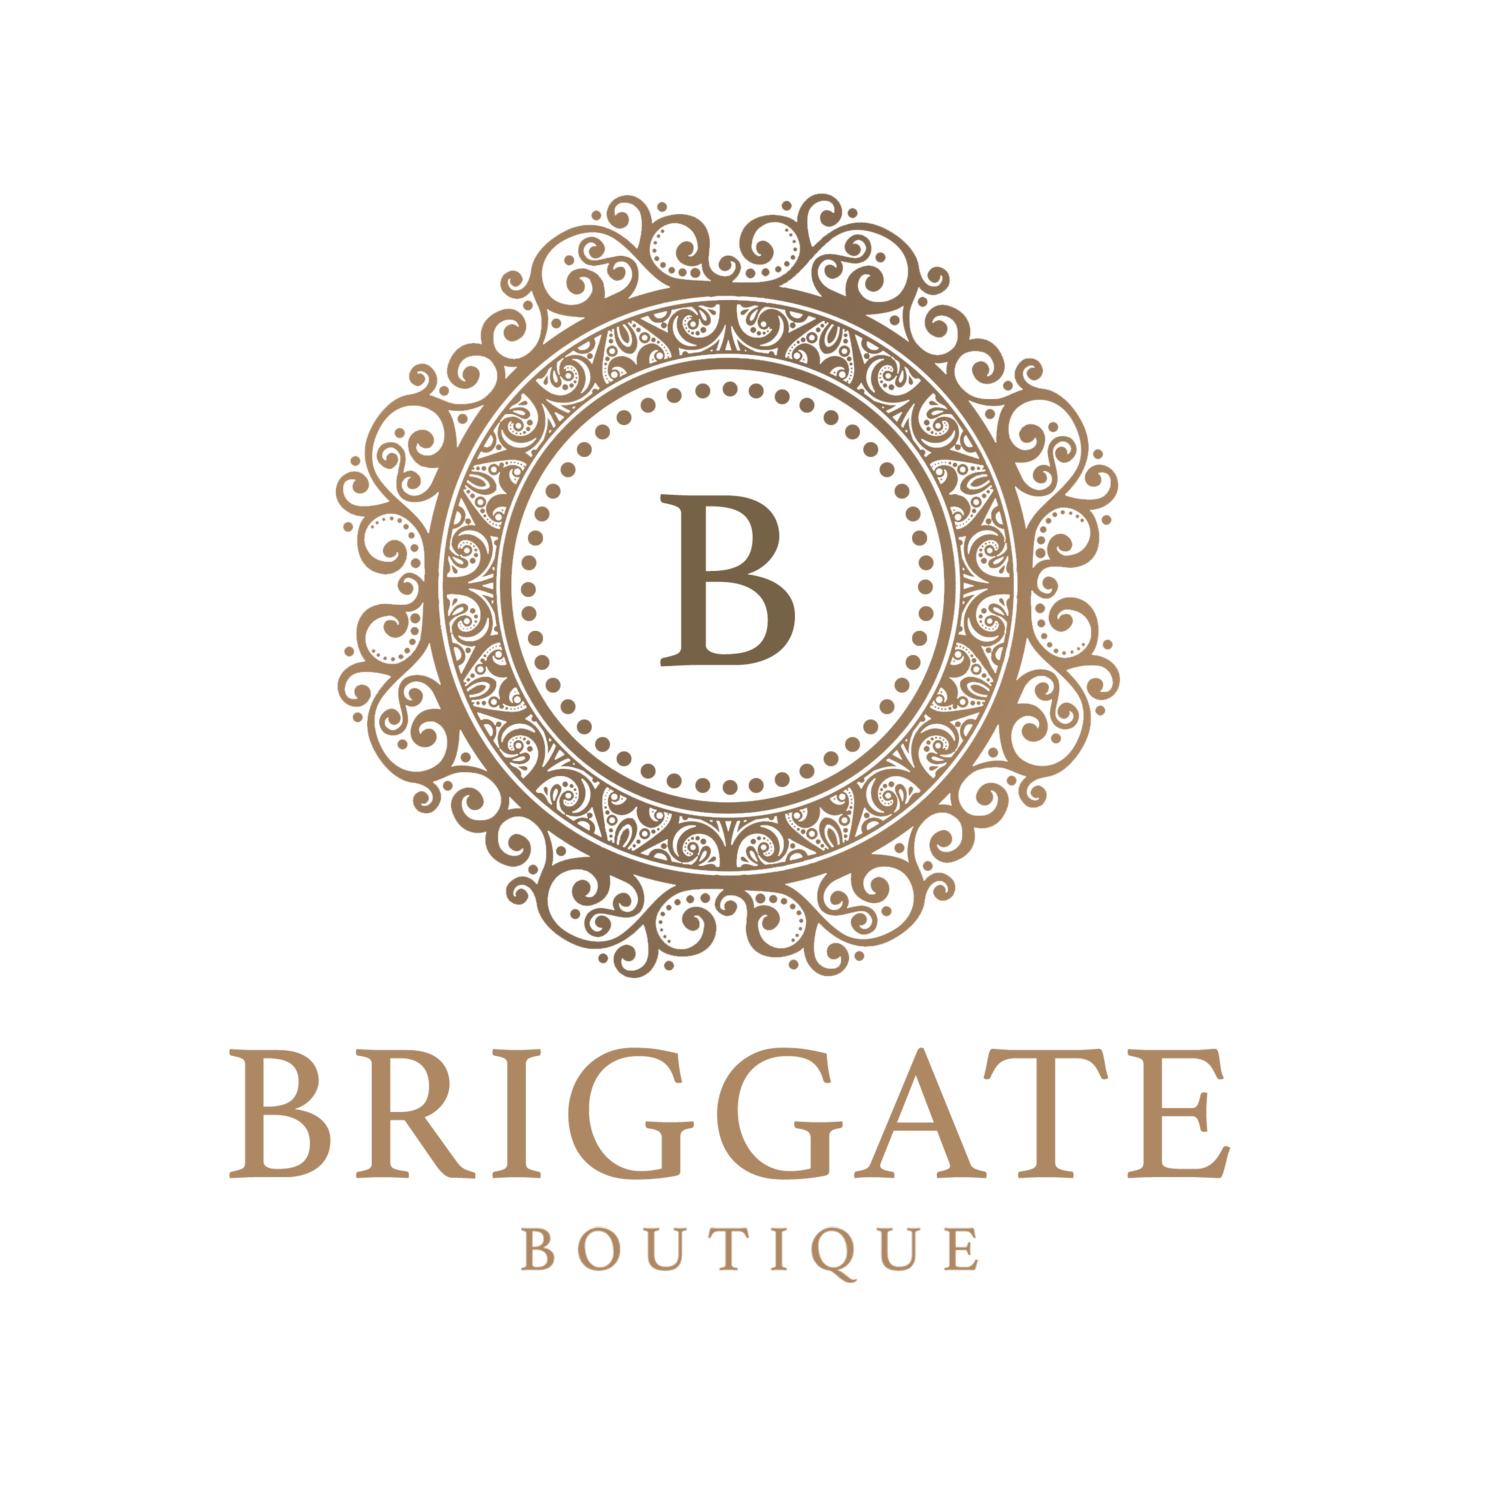 BRIGGATE BOUTIQUE